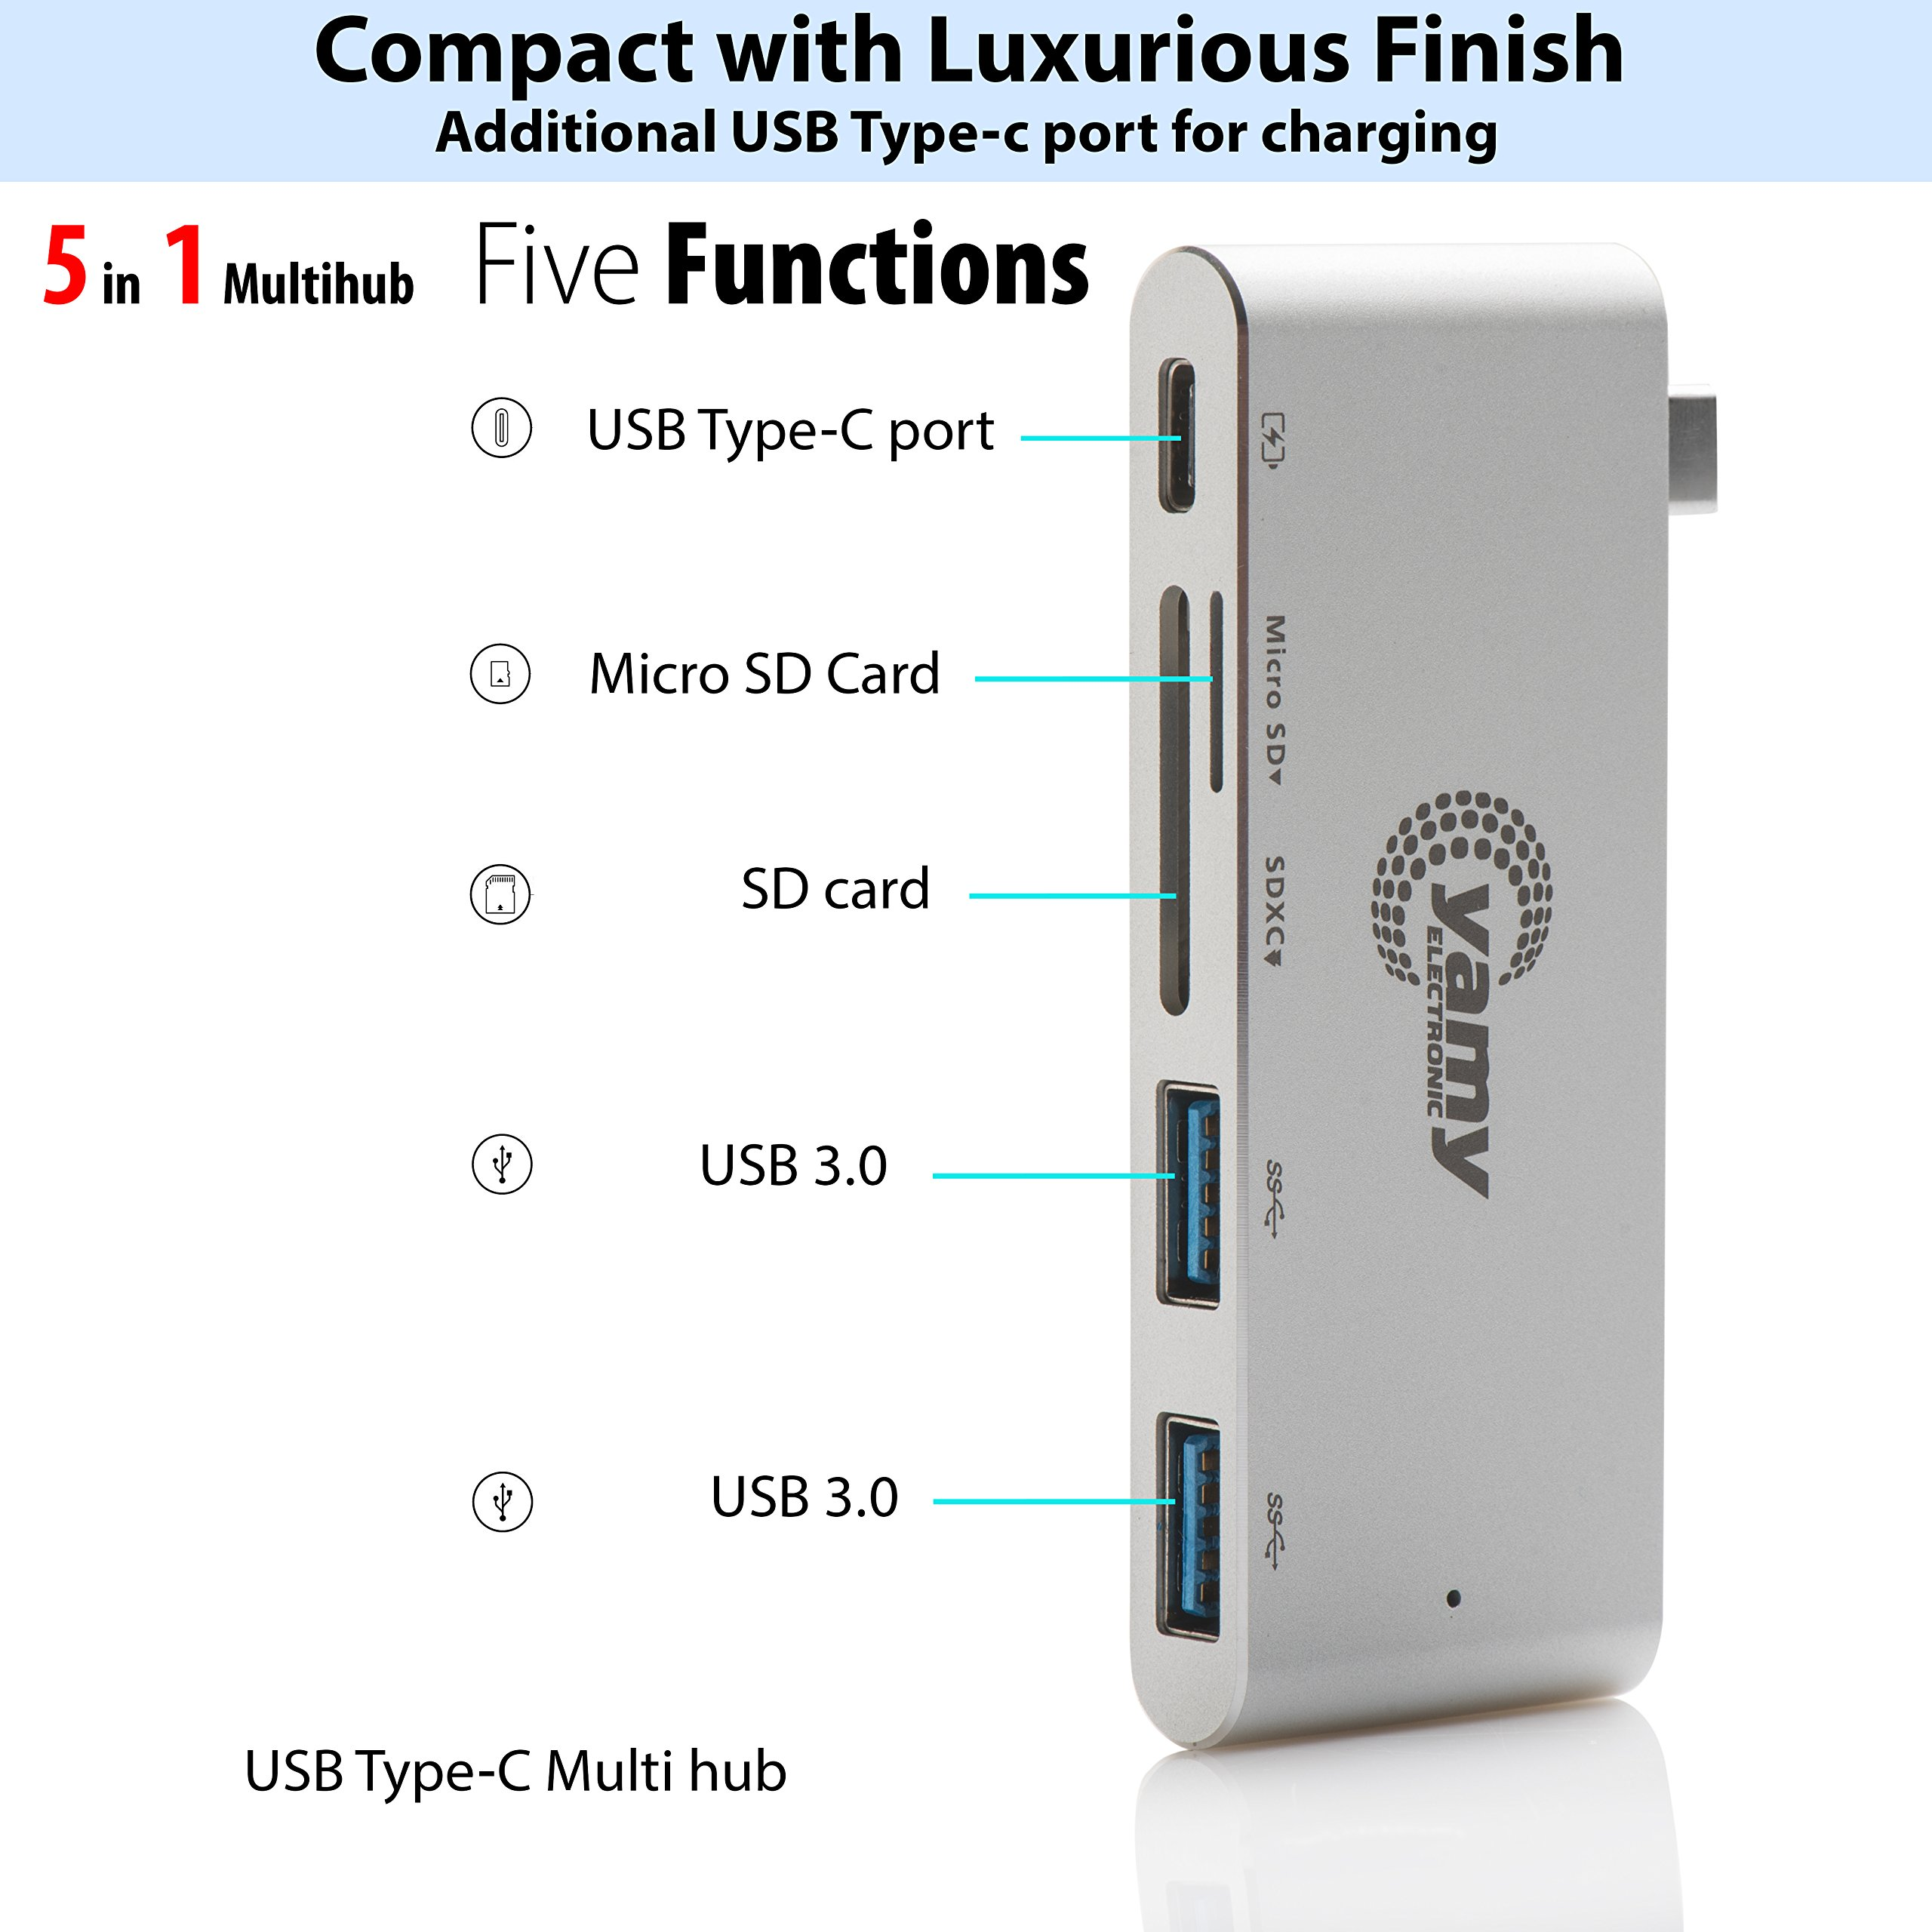 C-yamy Aluminum Charging Multi Hub USB-C,5-in-1 Adapter, Power Delivery & 2 USB 3.0 ports, SD Memory card Port,Tf/MicroSD Memory Card for All-new MacBook and Pro, All USB-C Devices (Silver) by c-yamy (Image #3)